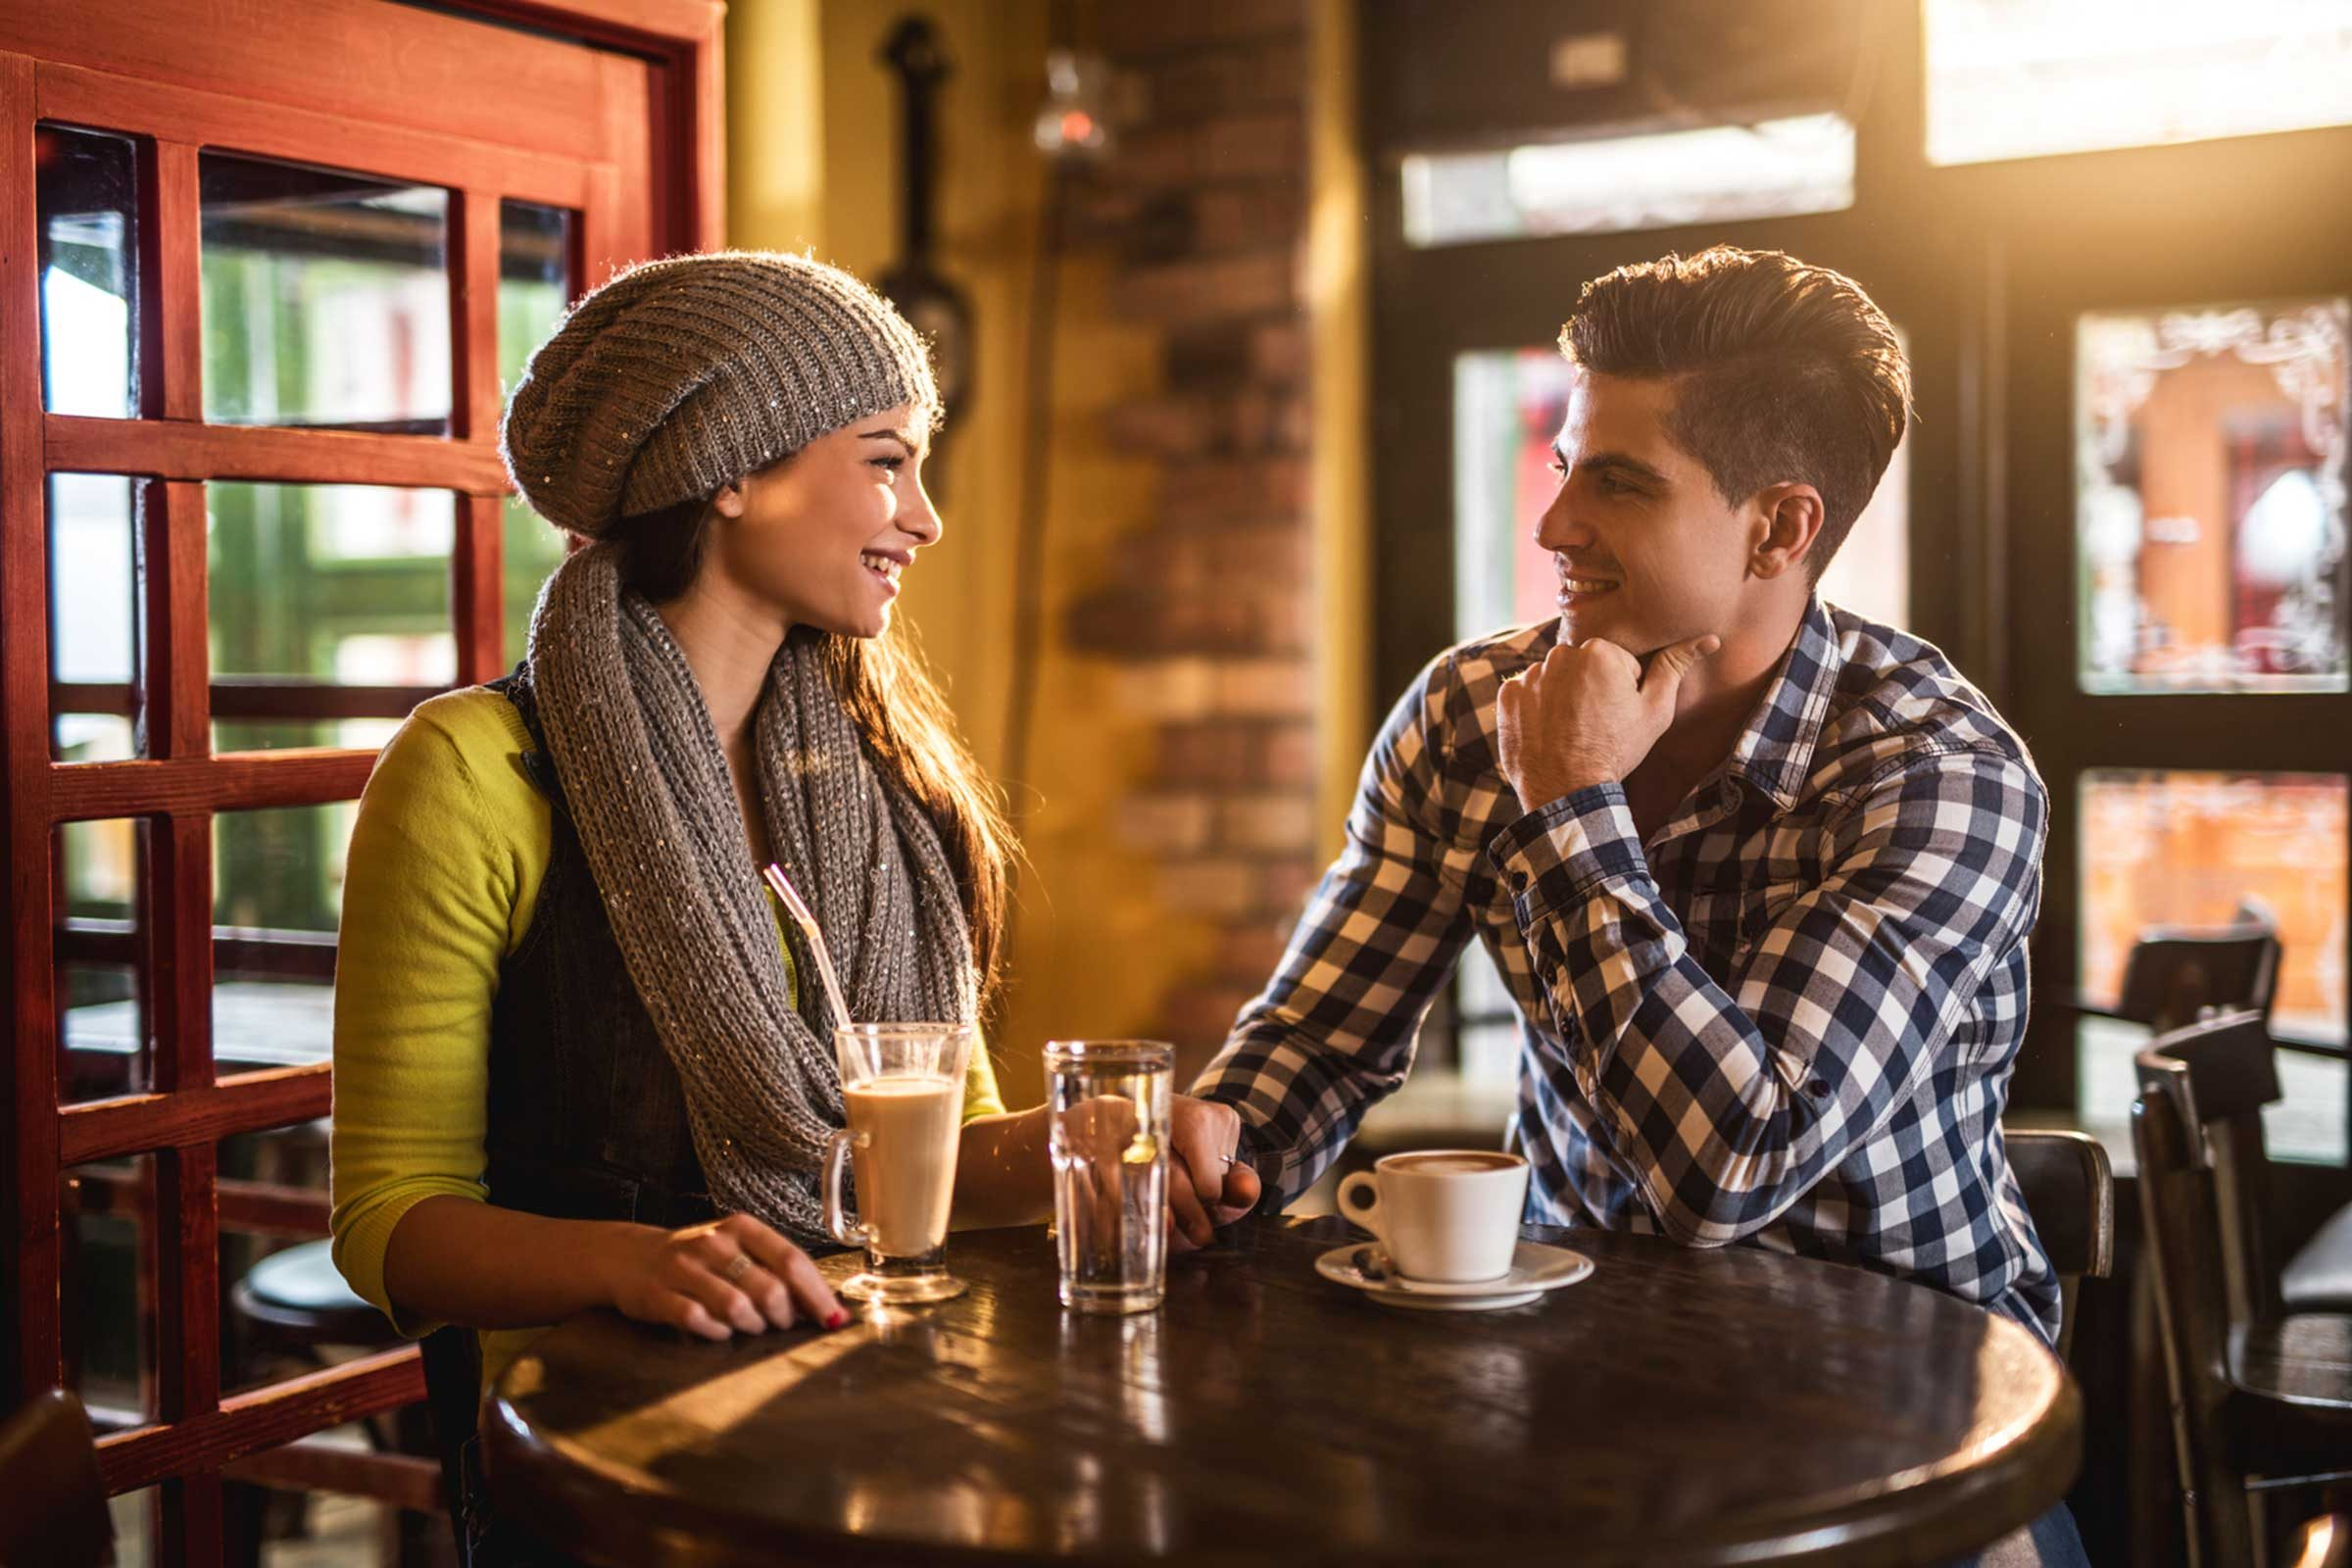 first week dating advice Get dating tips and advice on everything from flirting to asking a girl out to your first date to building a strong relationship.